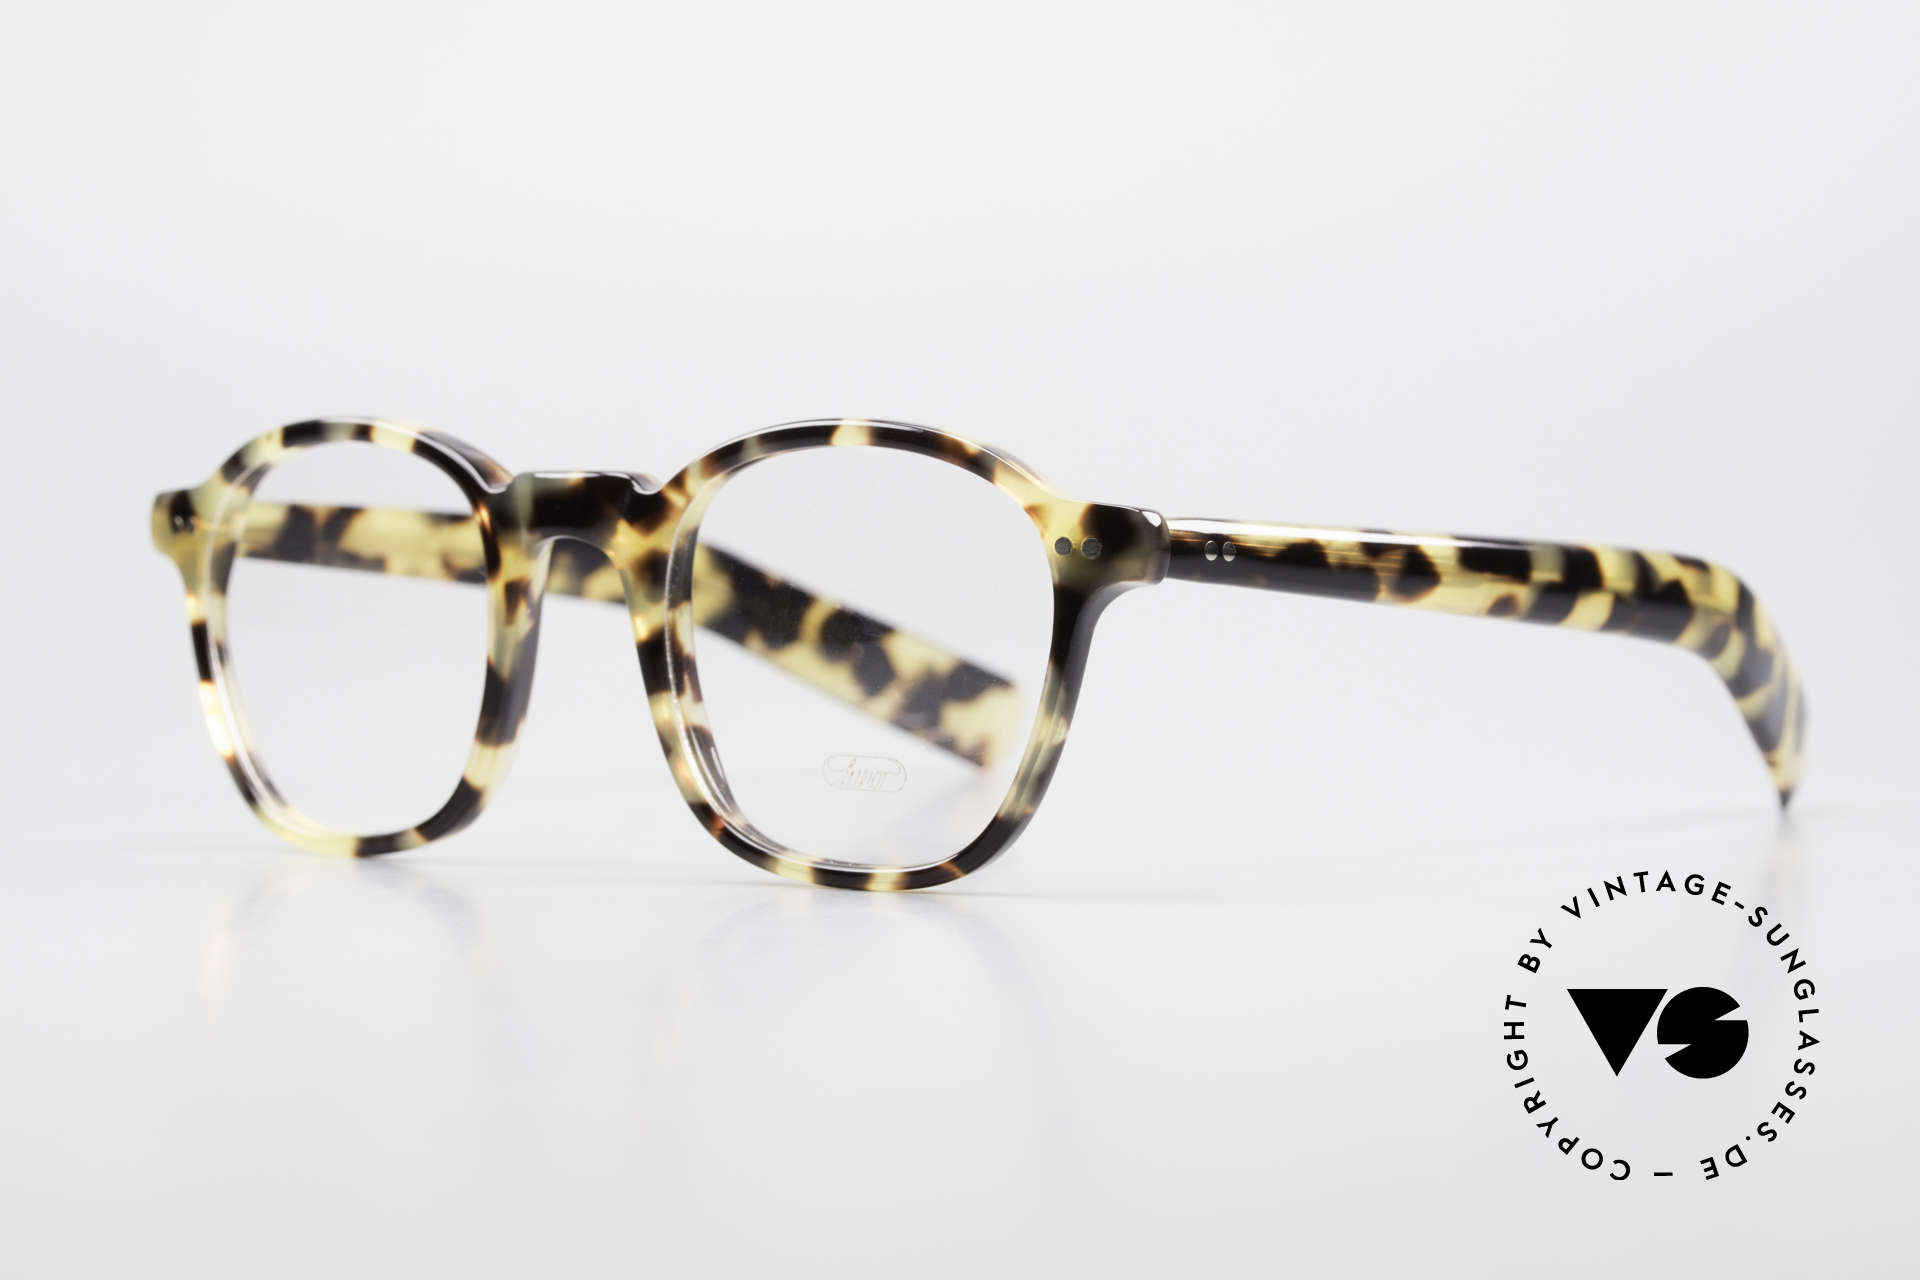 Lunor A51 Johnny Depp James Dean Specs, James Dean & Johnny Depp are popular for this frame style, Made for Men